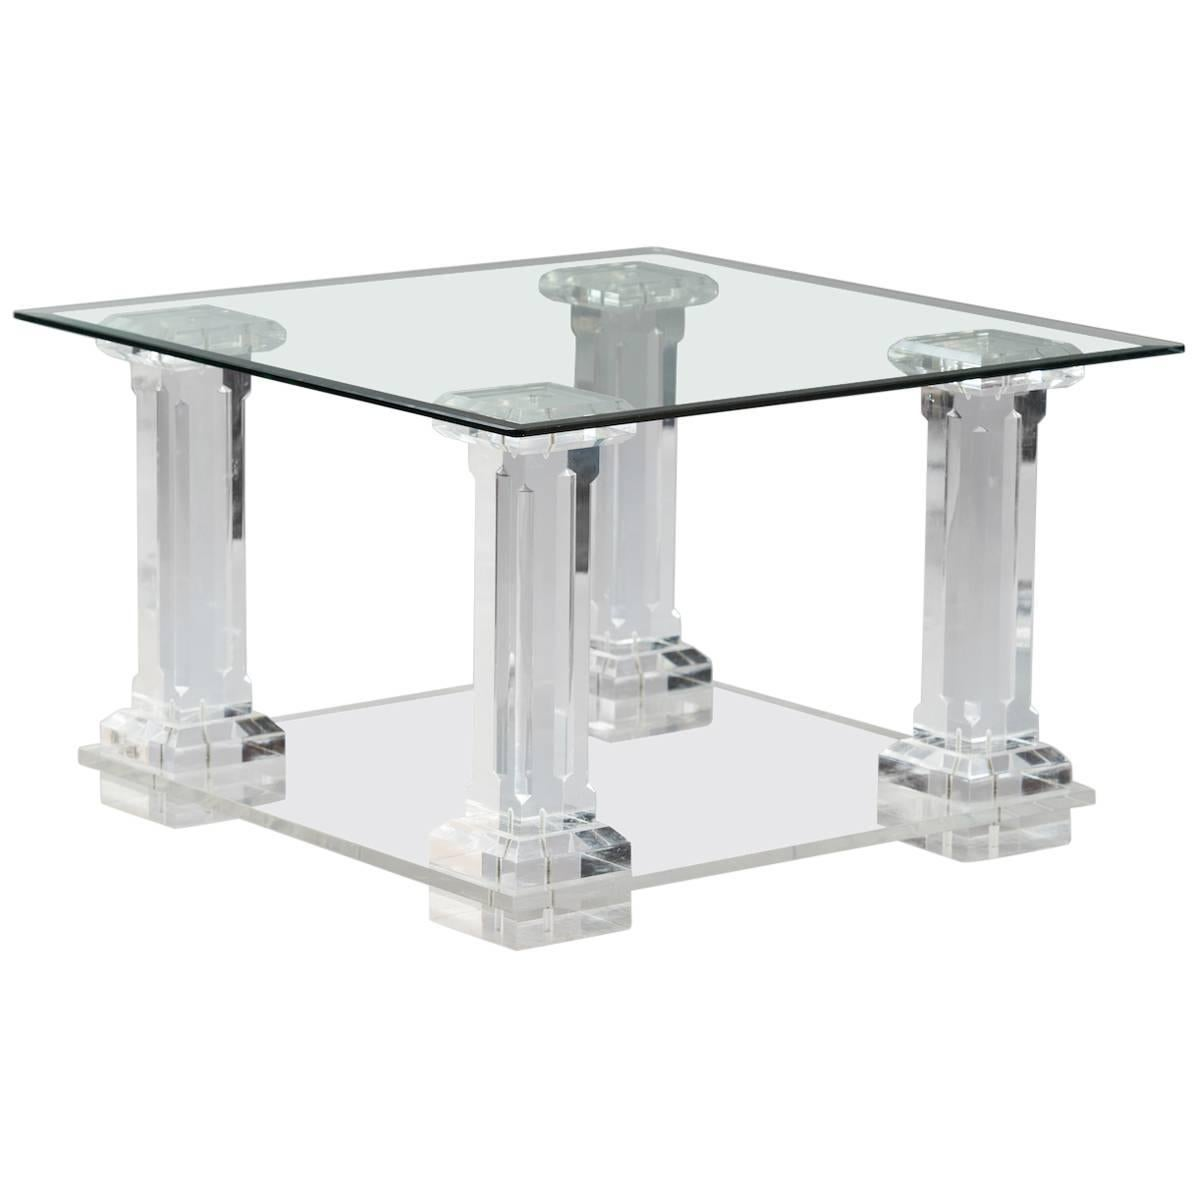 Italian lucite and glass Side Table